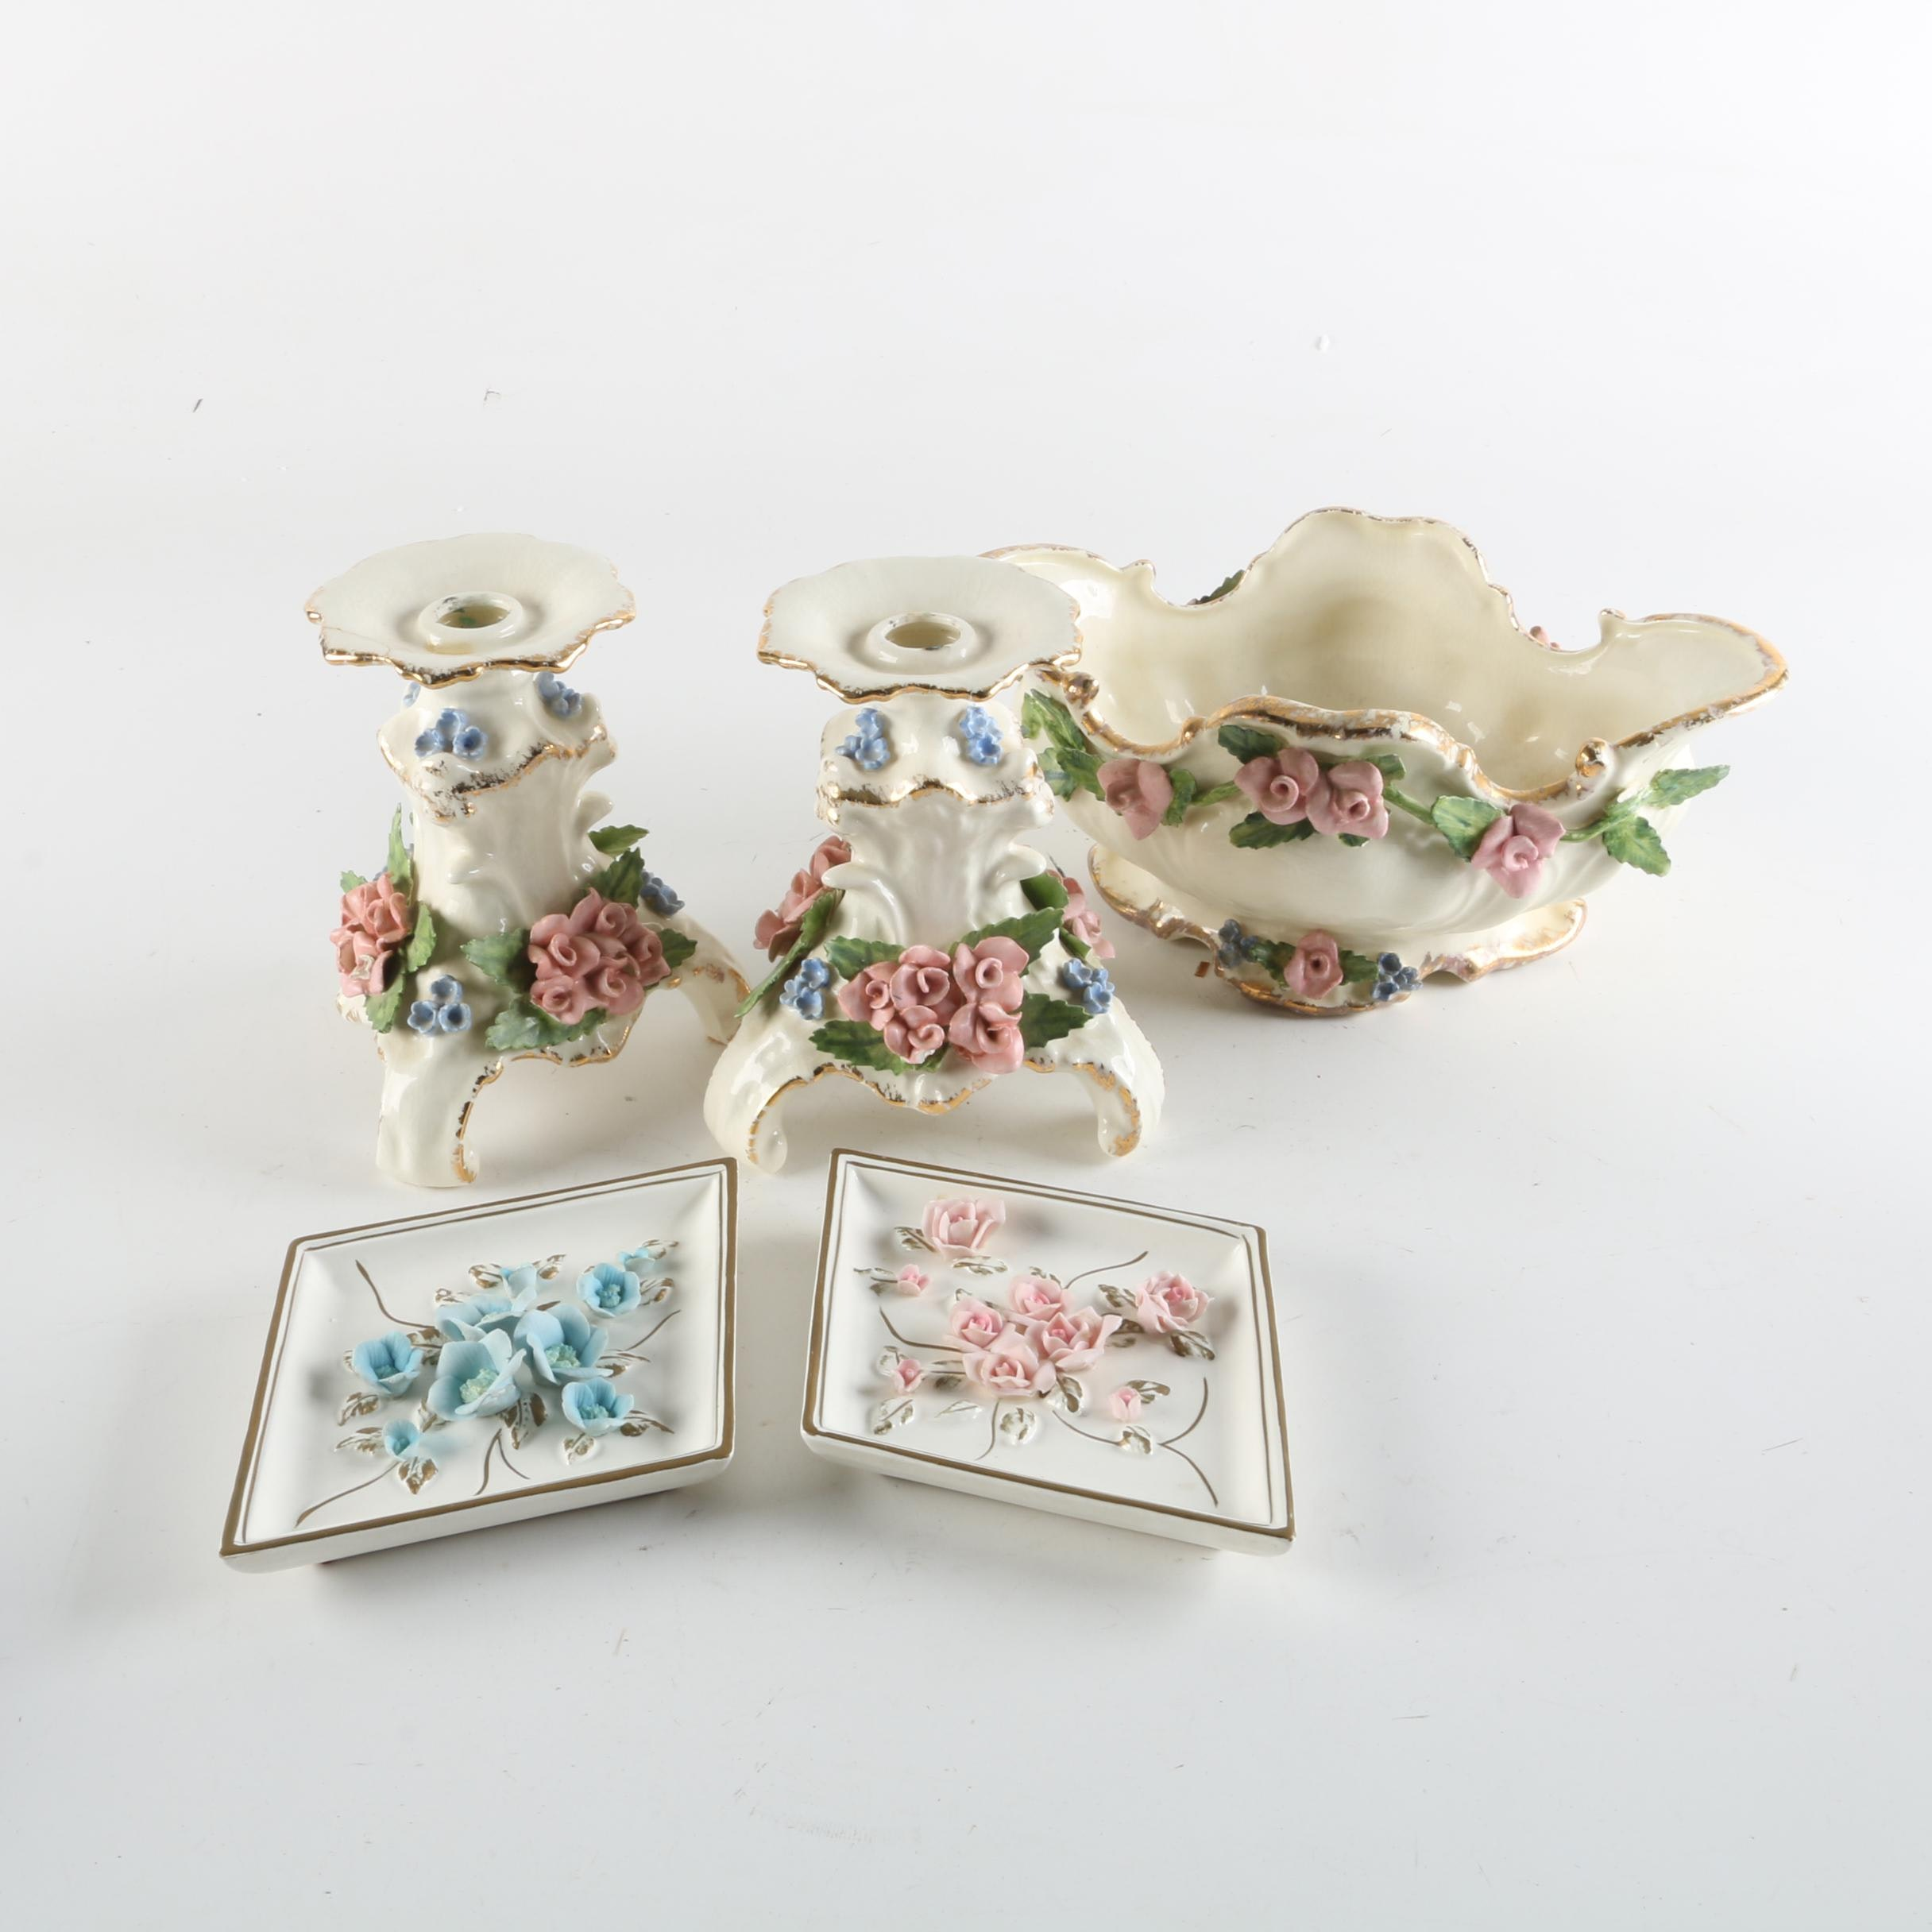 Vintage Capodimonte Style Bowl and Candlesticks with Lefton Wall Plaques